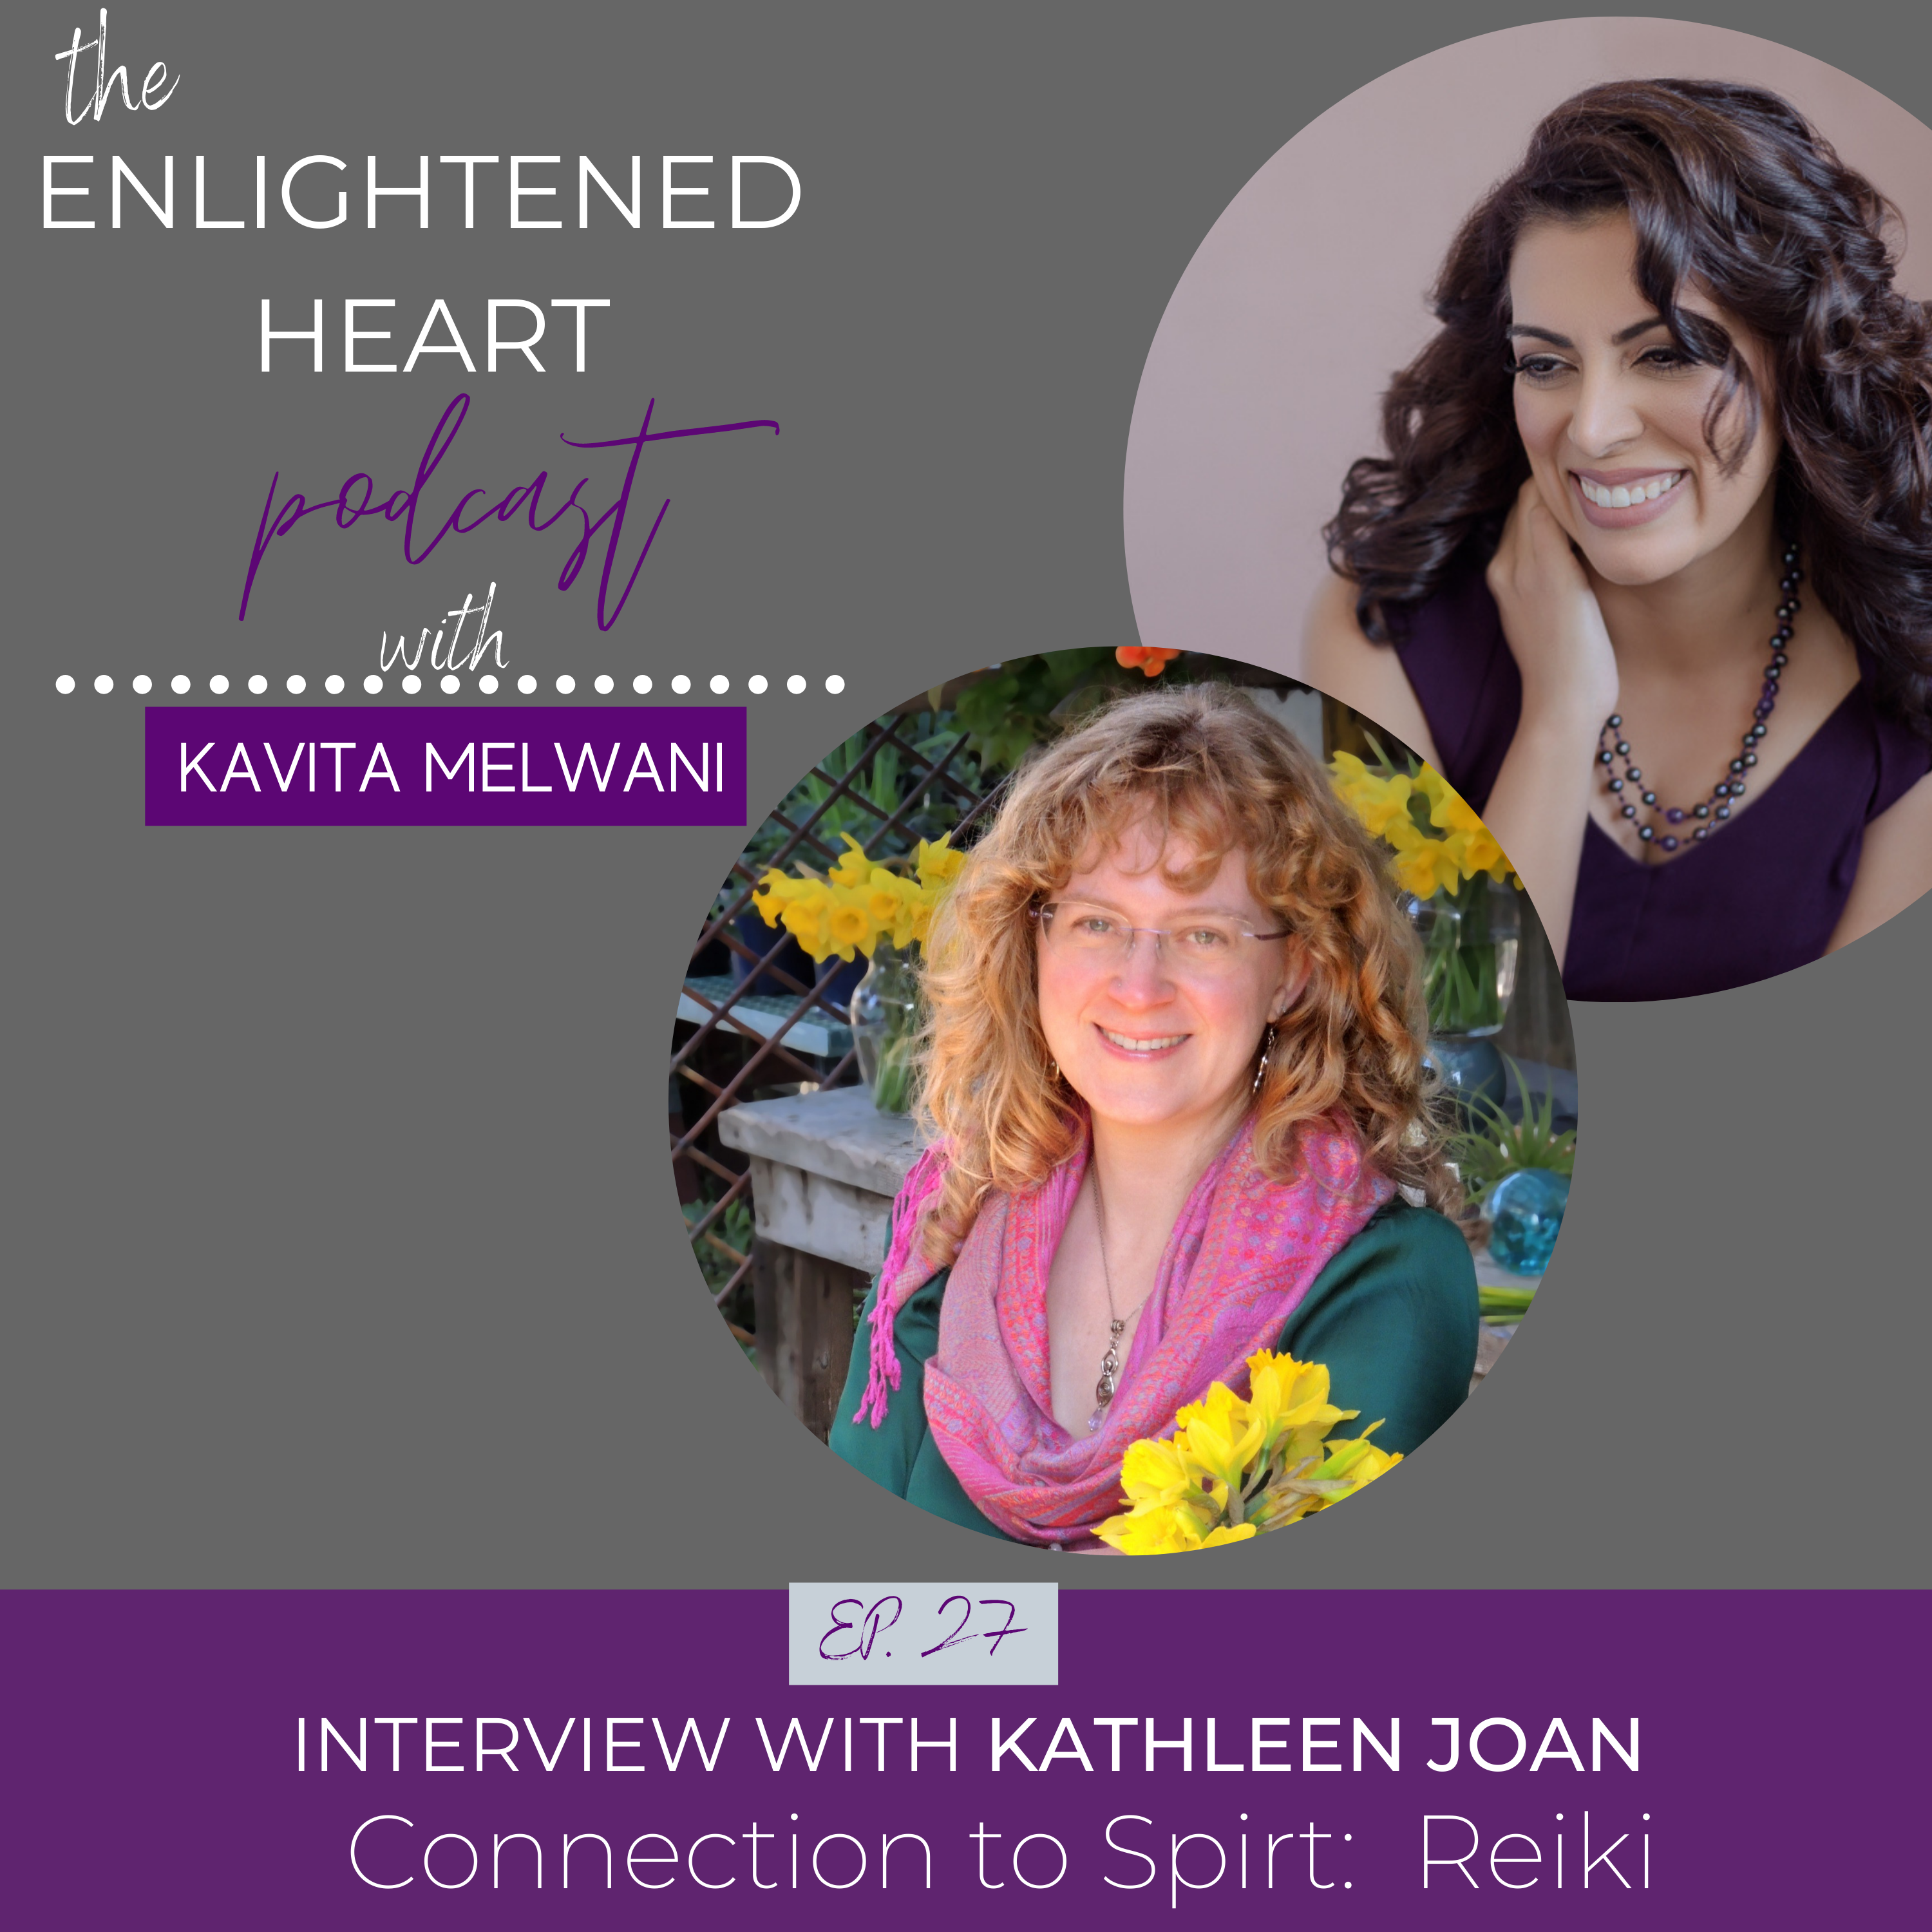 Connection to Spirit: Interview with Kathleen Joan